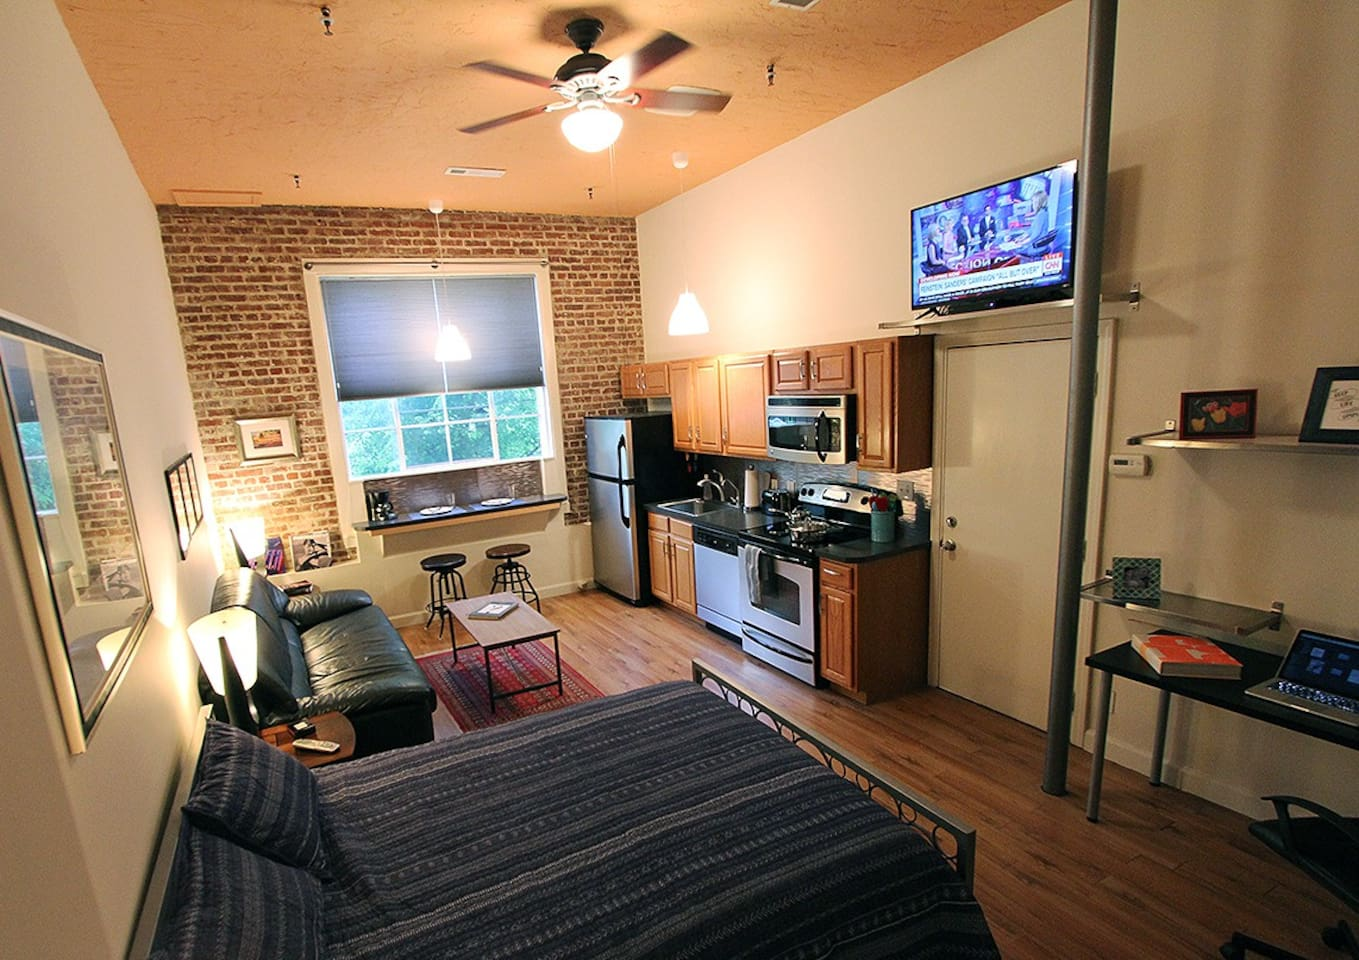 Historic Studio Loft 2 Located in up and coming inner city neighborhood.